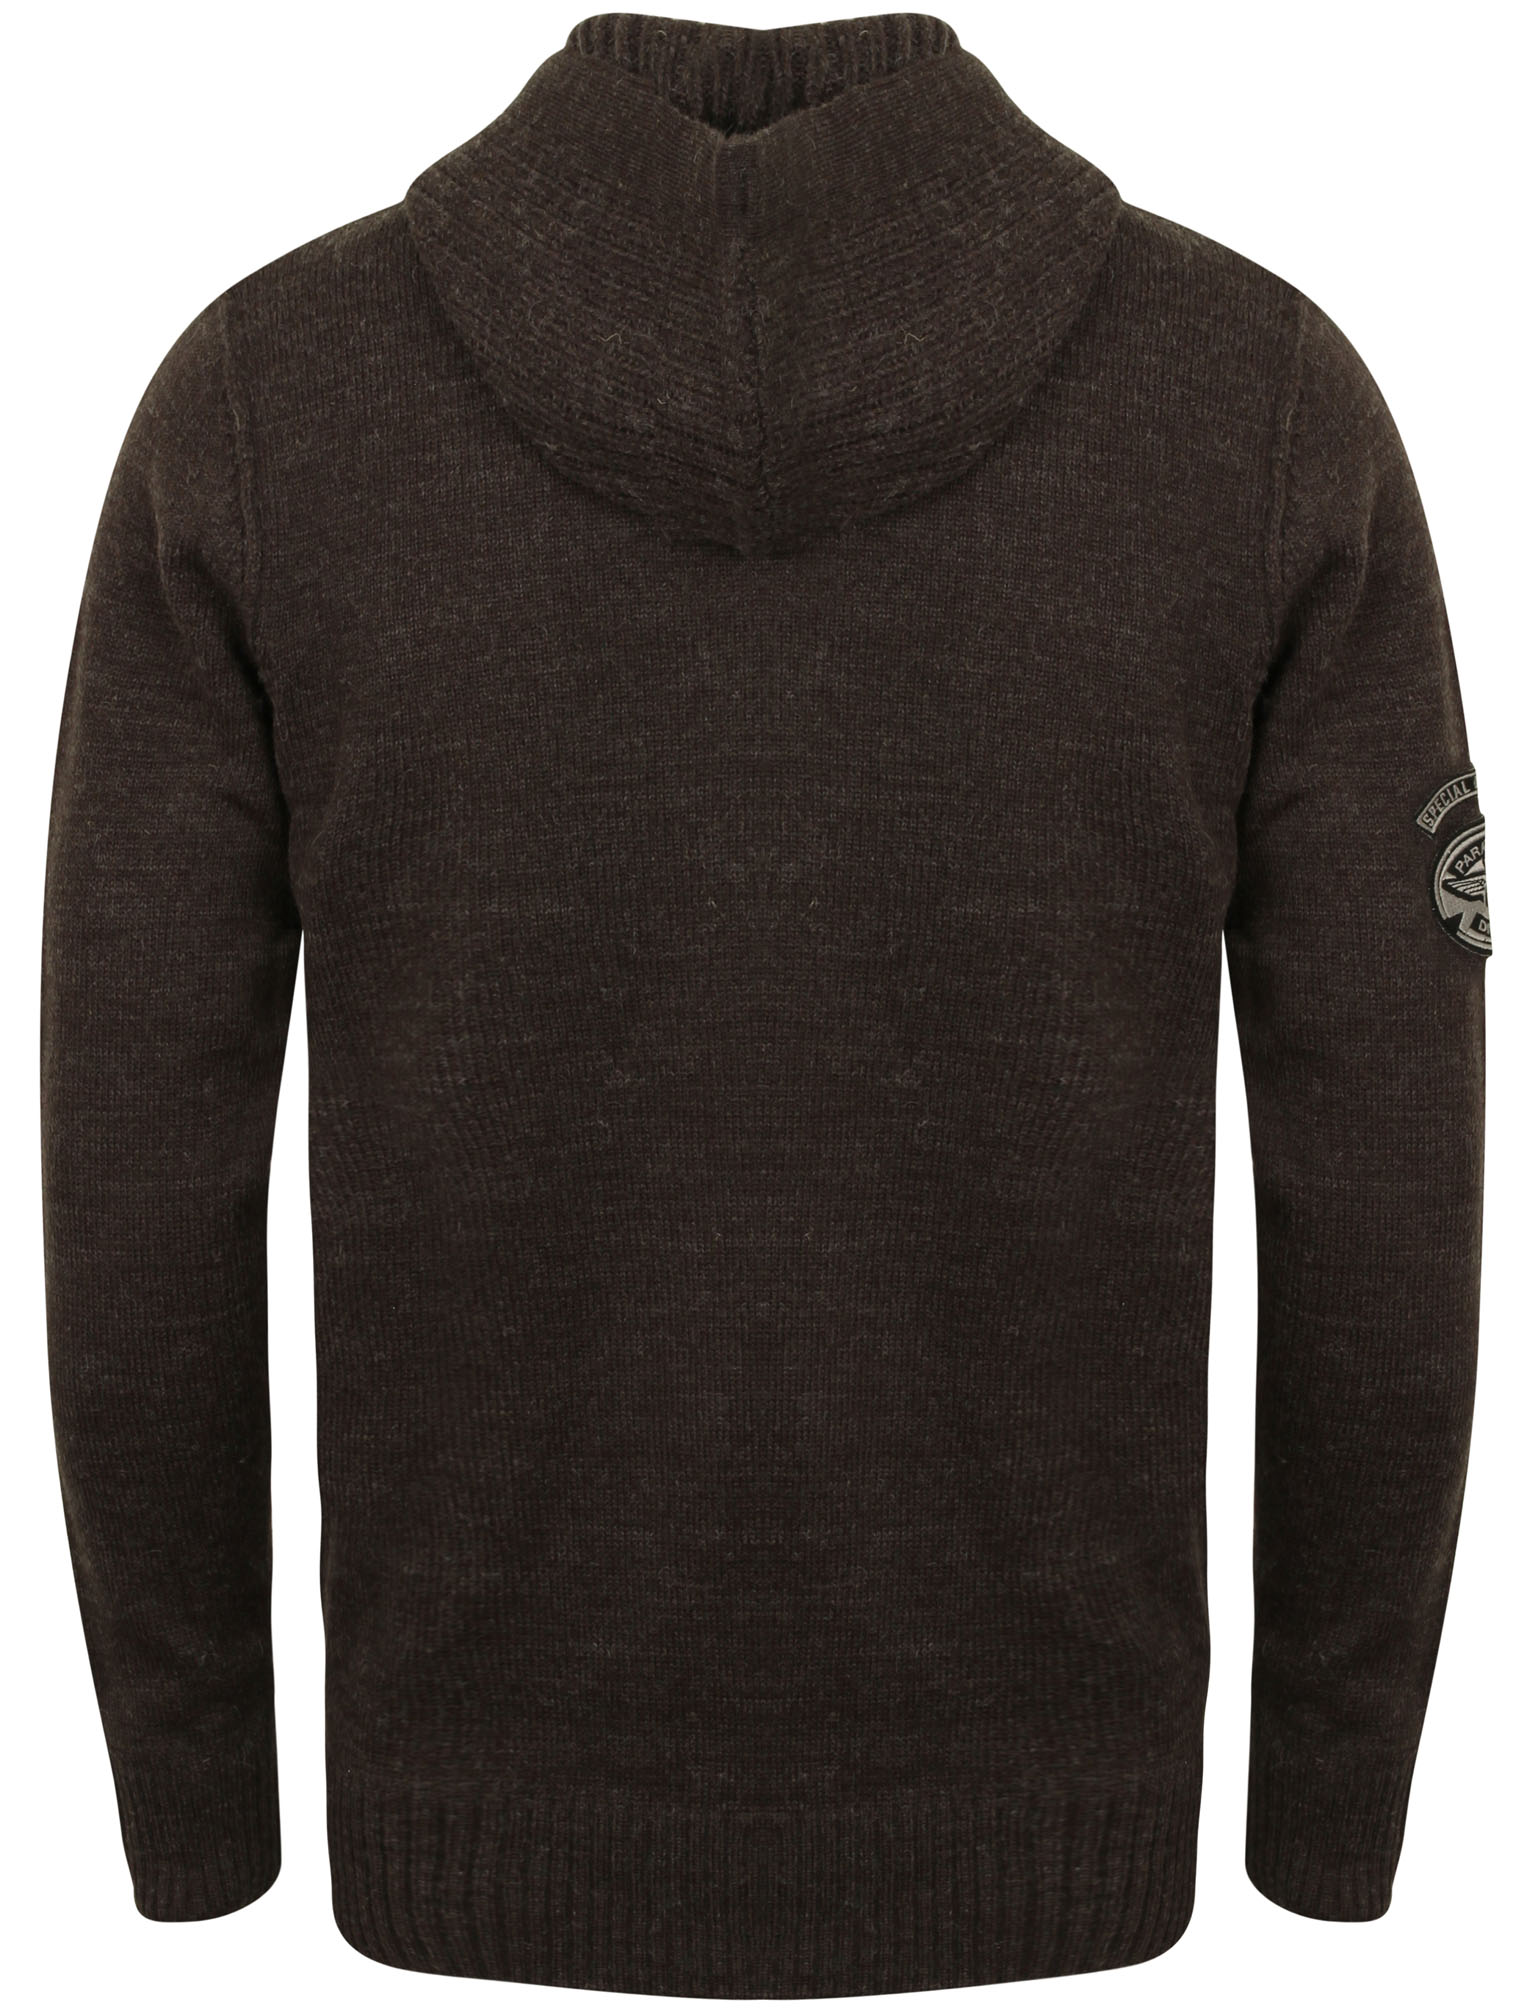 Mens Dissident Cruise Wool Mix Zip Up Hooded Sweater Knitted ...